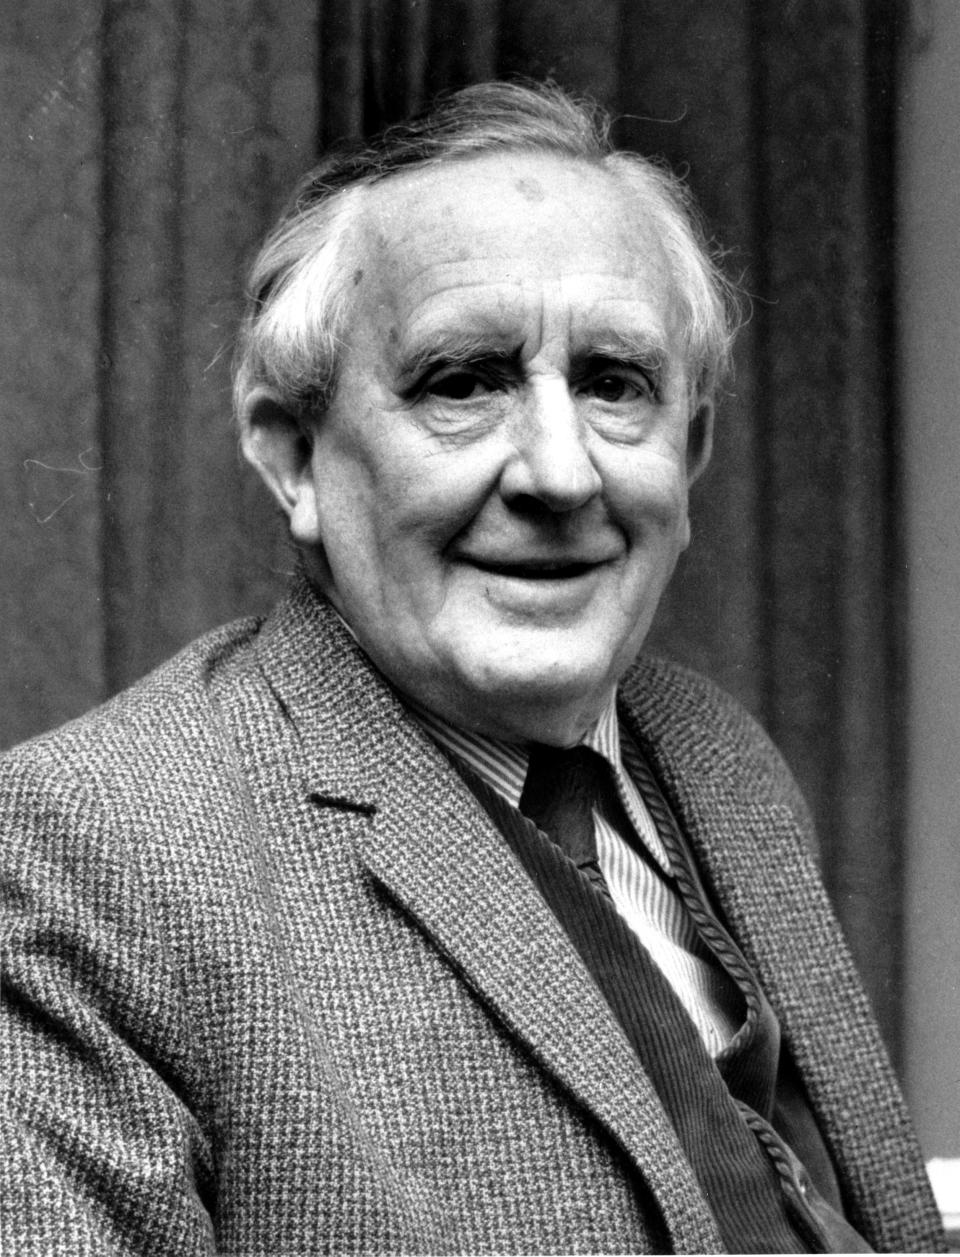 """**FILE**This is a 1967 photo of J.R.R. Tolkien.  Tolkien was the author of """"The Lord of the Rings"""" and an Oxford University Professor.  An unfinished tale by the author has been edited by his son into a completed work and will be released next spring, the U.S. and British publishers announced Monday, Sept. 19, 2006. Christopher Tolkien has spent the past 30 years working on """"The Children of Hurin,"""" an epic tale his father began in 1918 and later abandoned.  (AP Photo)"""